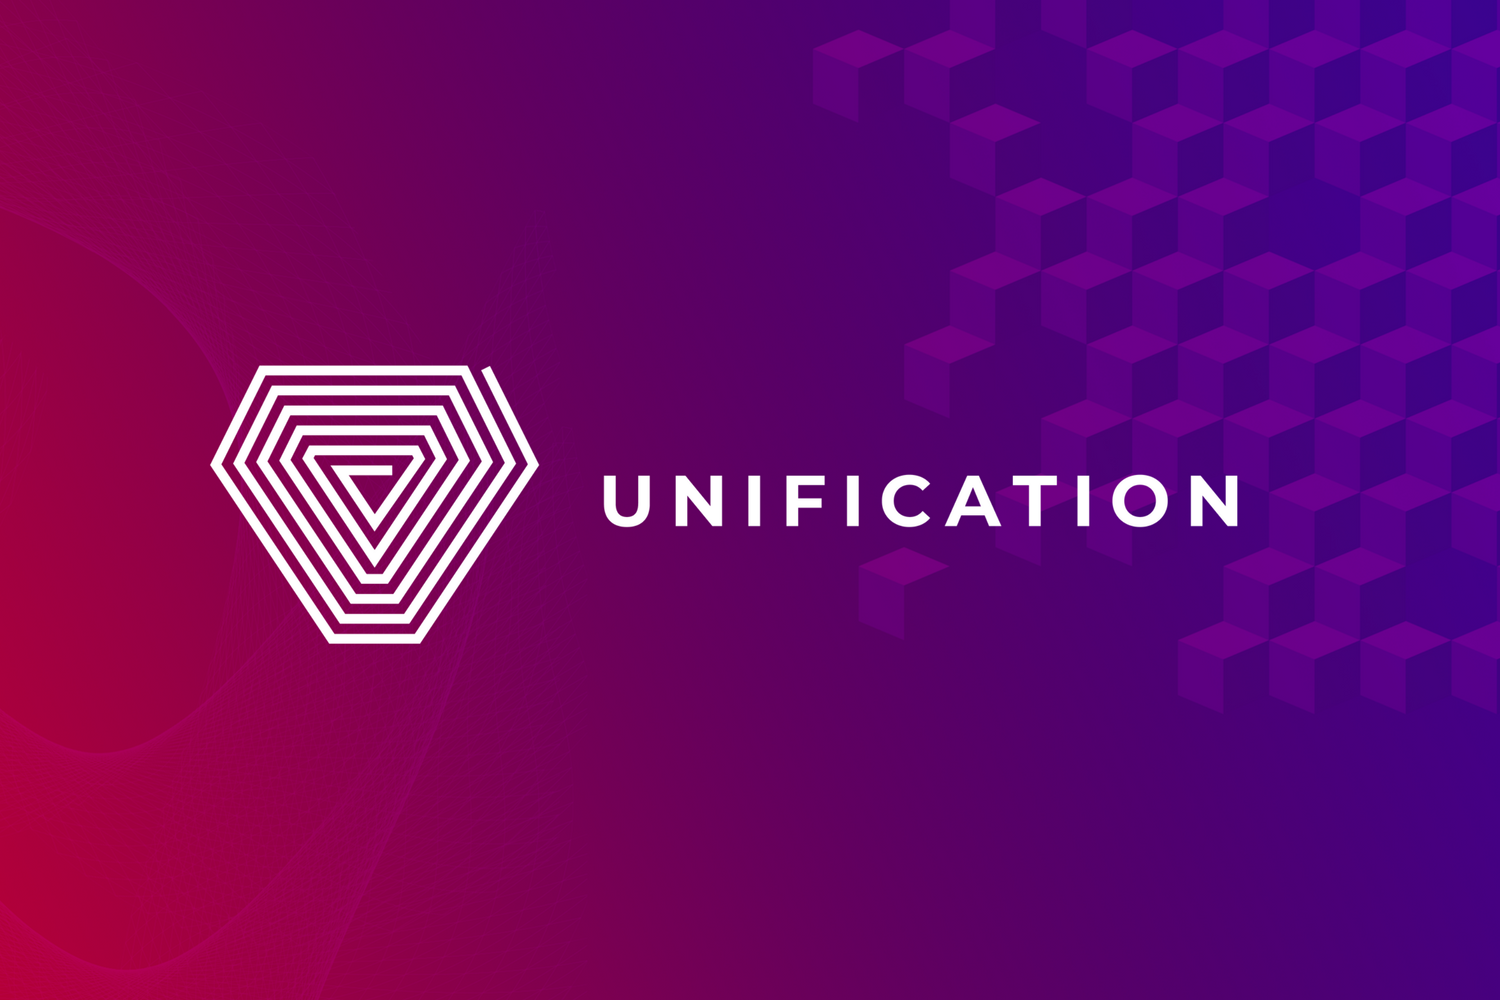 Unification Is A Decoupled Architectural Framework That Provides Generalized State Channels